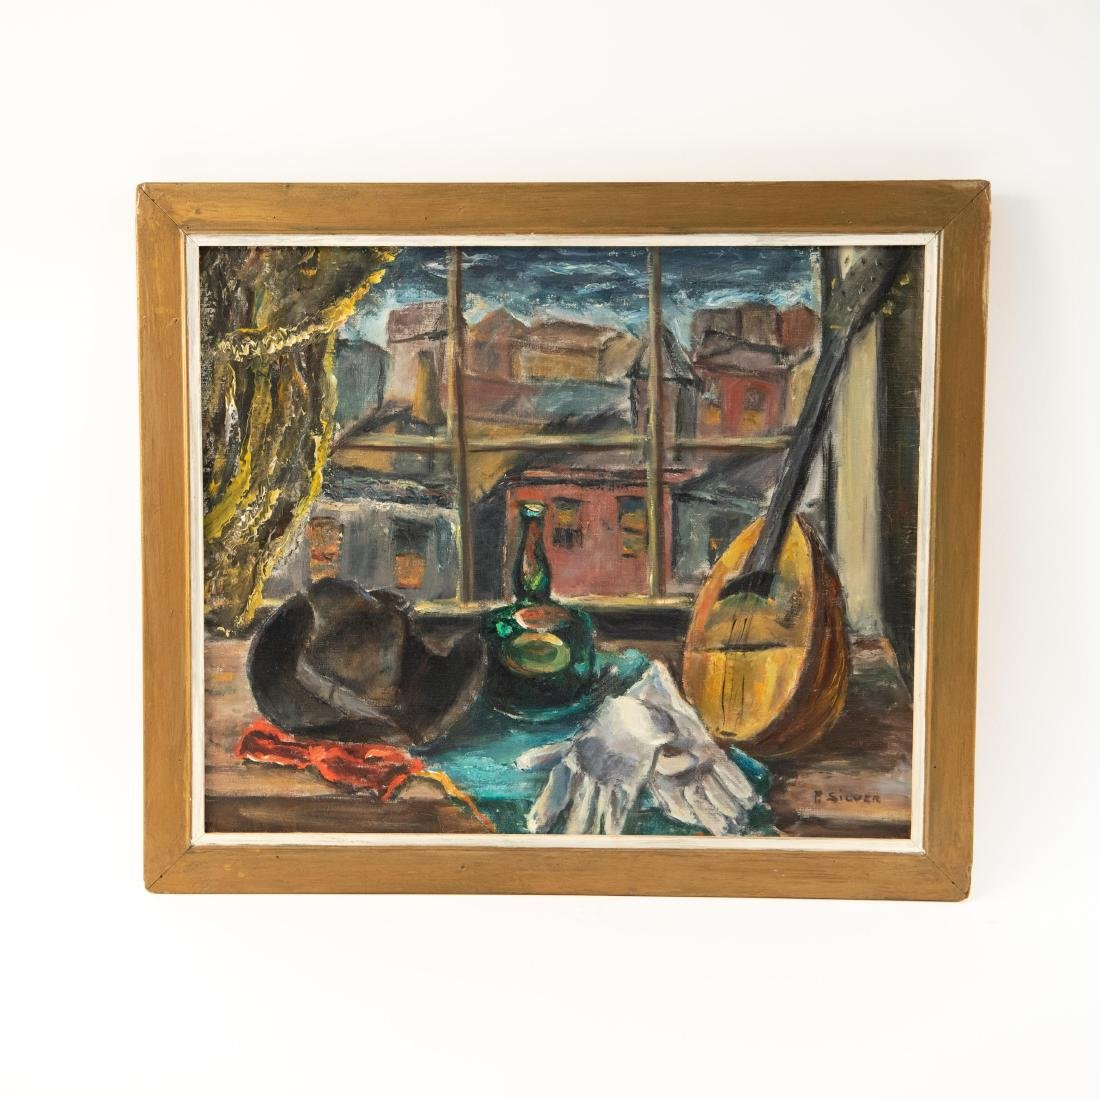 PAULINE SILVER OIL ON CANVAS STILL LIFE PAINTING